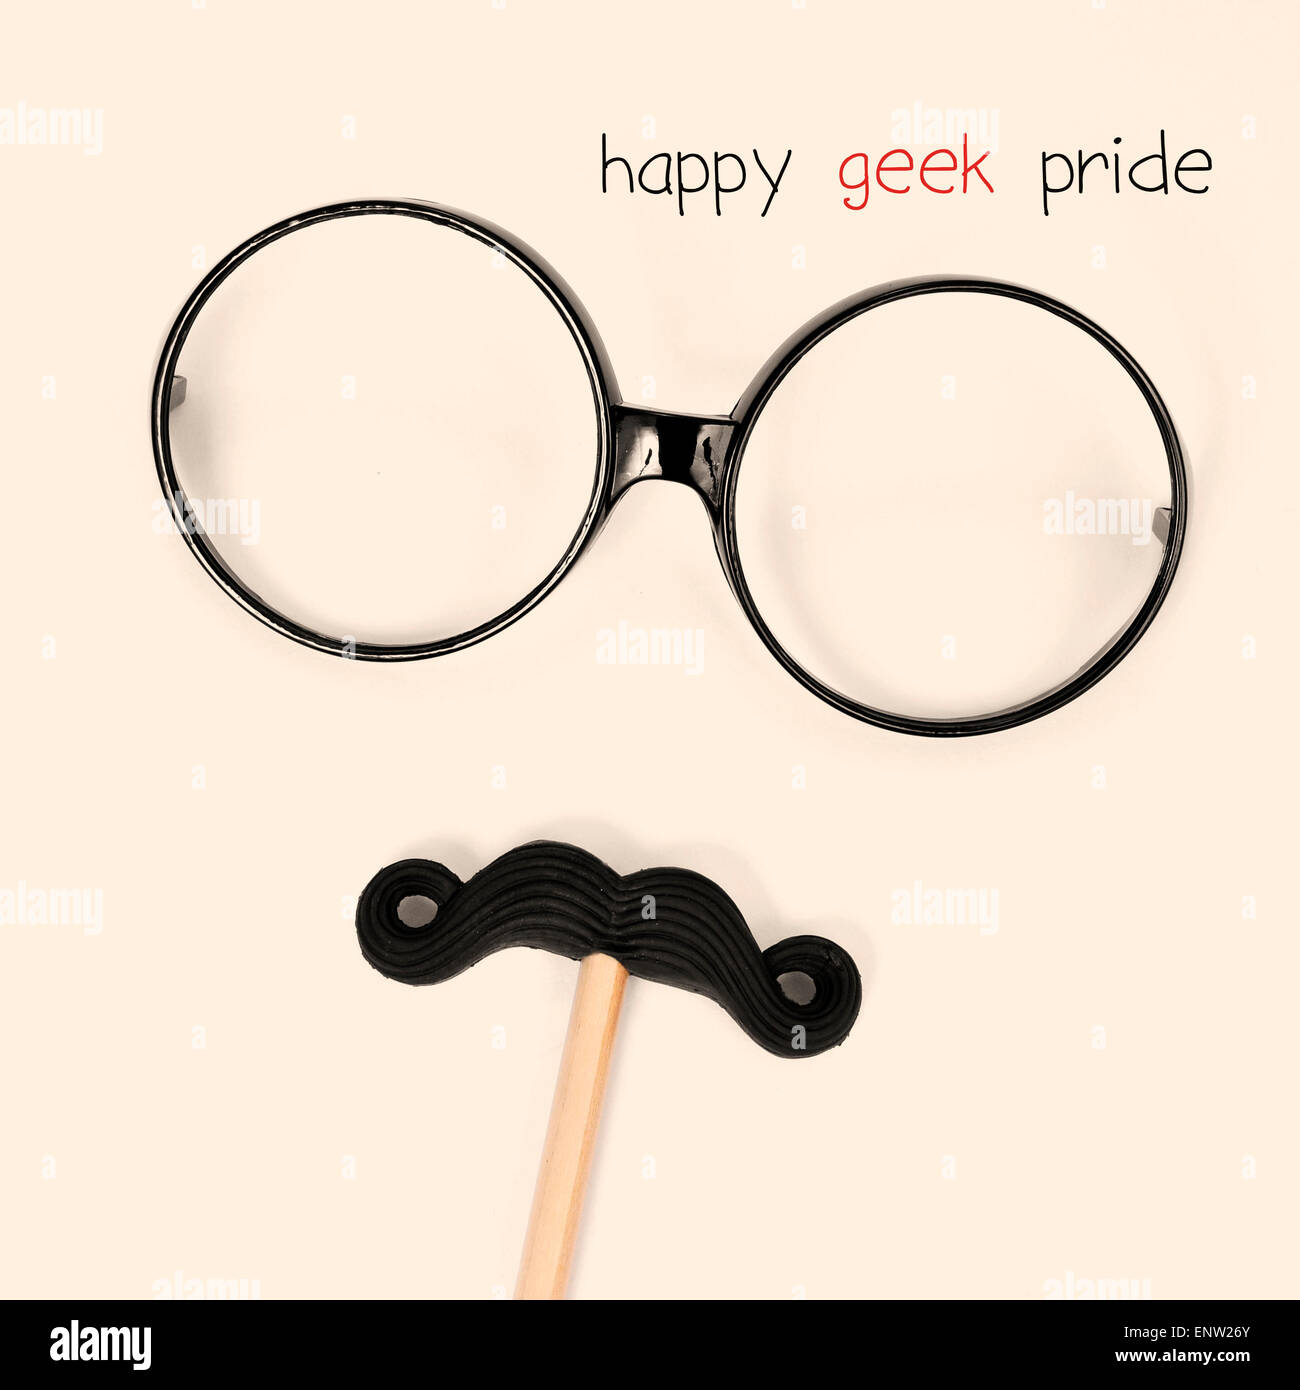 the text happy geek pride and a pair of round-framed eyeglasses and a moustache depicting a man face, on a beige - Stock Image